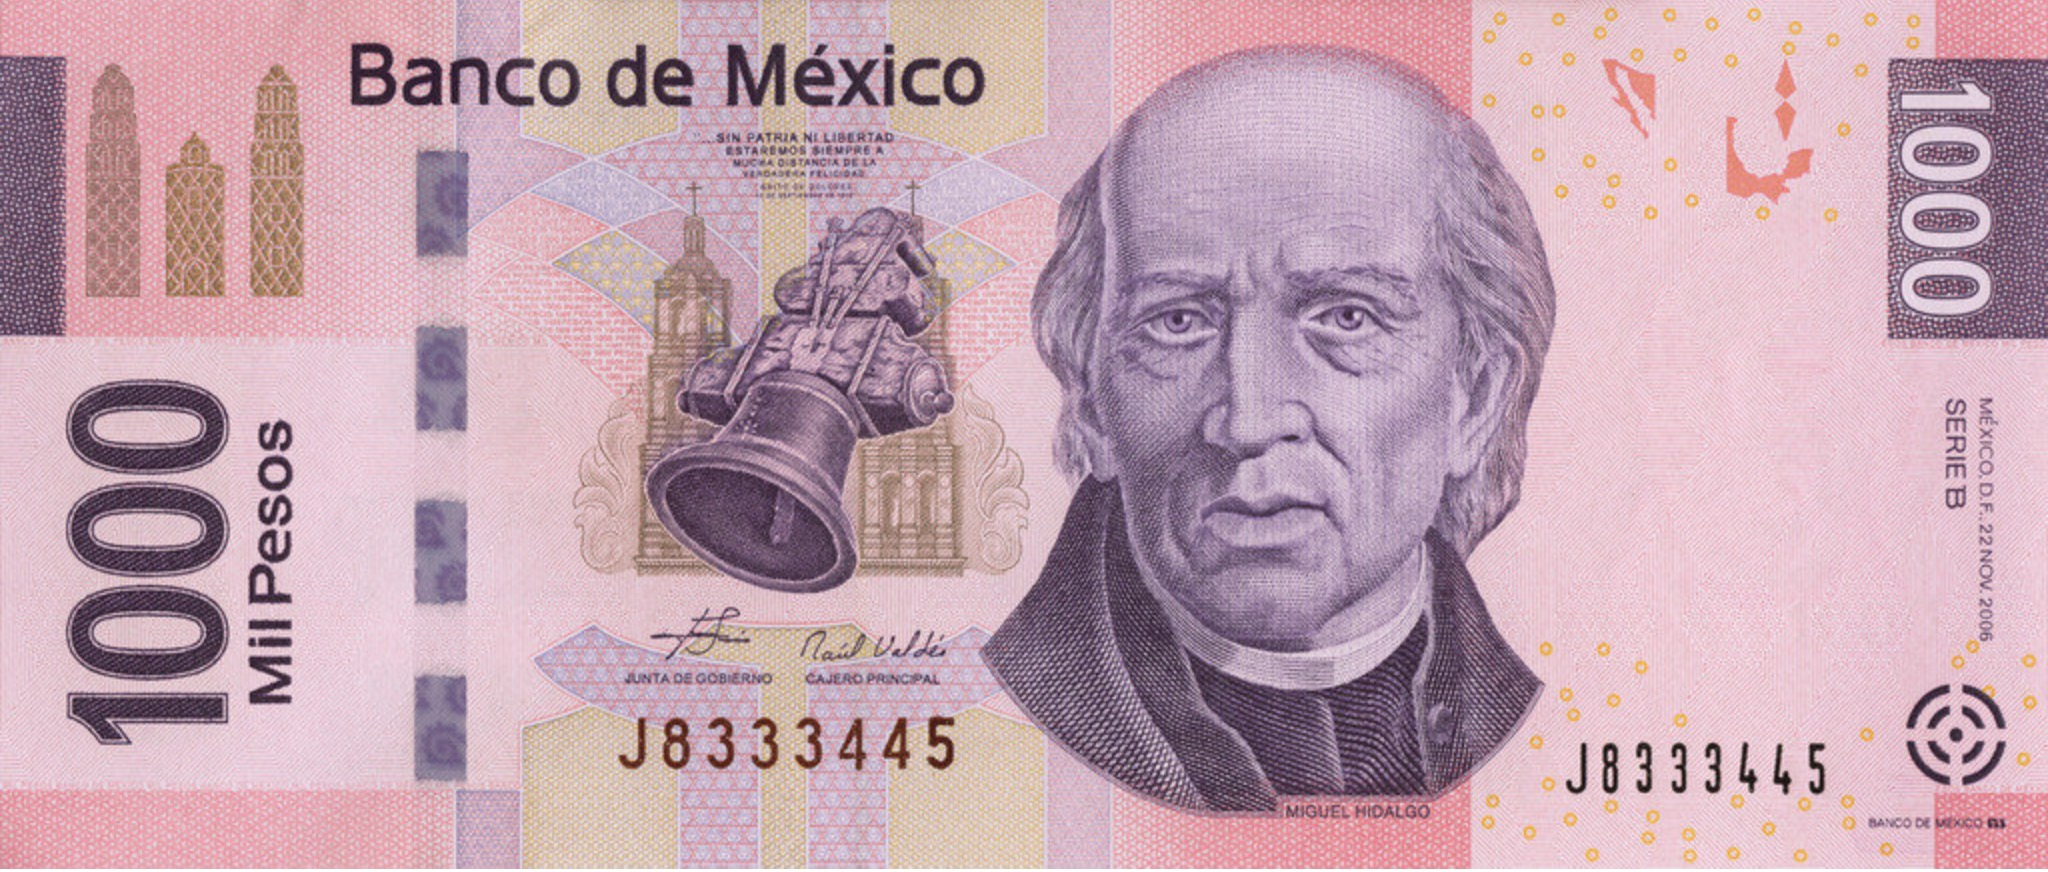 1000 Mexican Pesos banknote series F